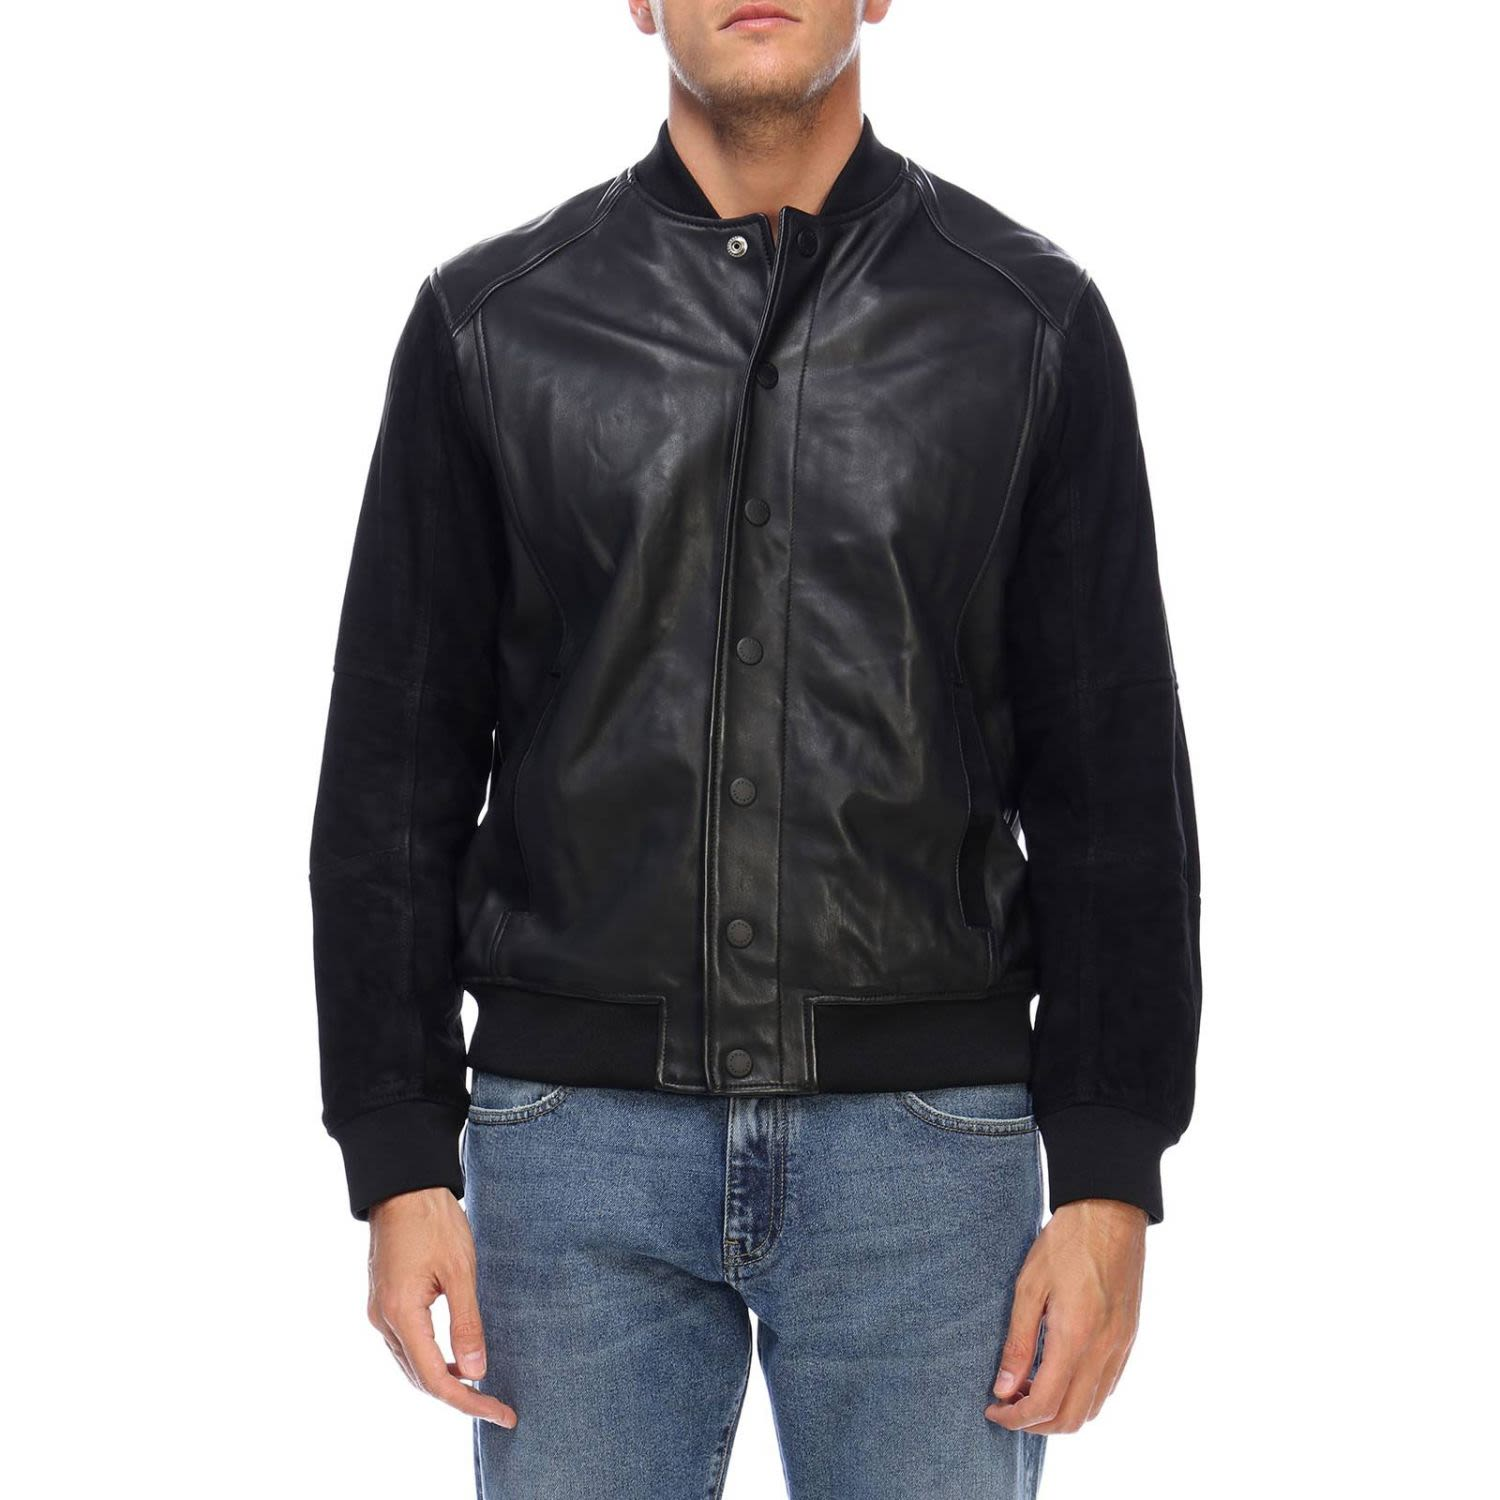 Armani Exchange Jacket Jacket Men Armani Exchange